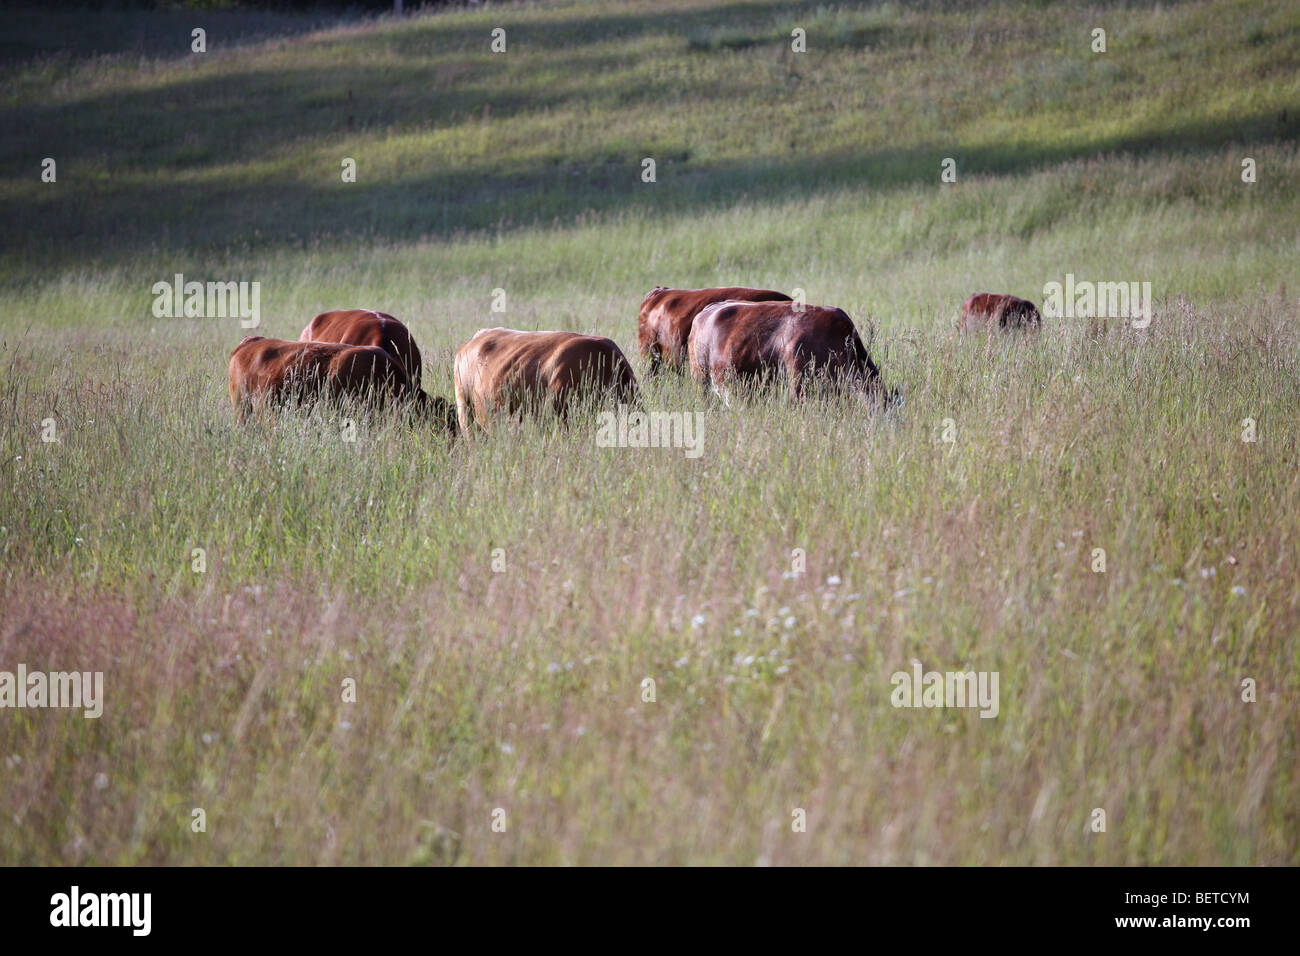 Cows grazing in the high grass, near Sandpoint, Idaho. - Stock Image